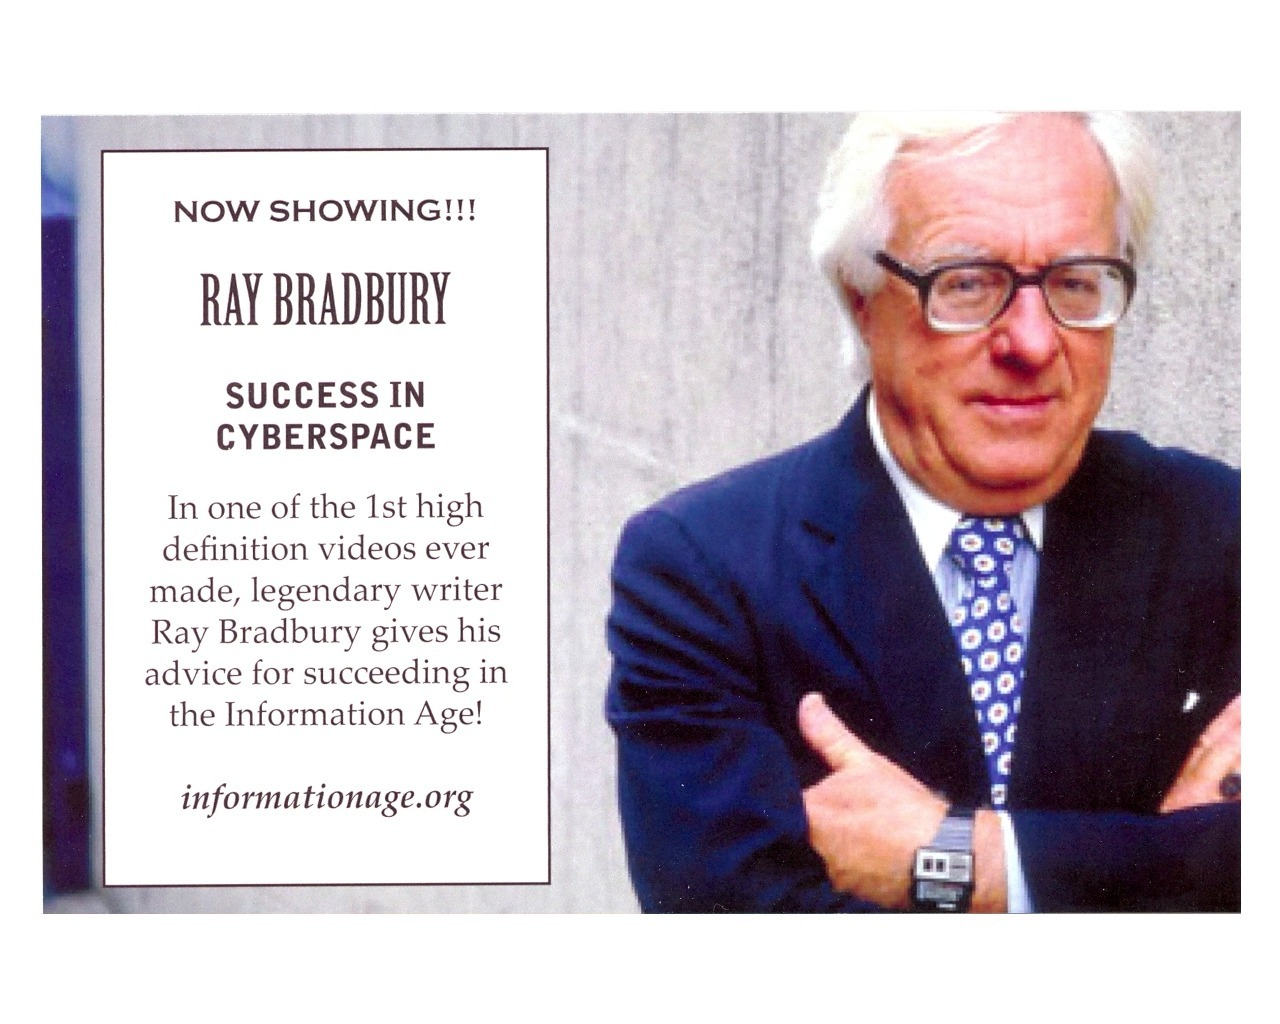 """In a video lost for a generation, renowned Sci-Fi writer Ray Bradbury returns to give his timeless insight into how humans can achieve """"Success in Cyberspace,"""" now showing on www.informationage.org. (Photo: Business Wire)"""